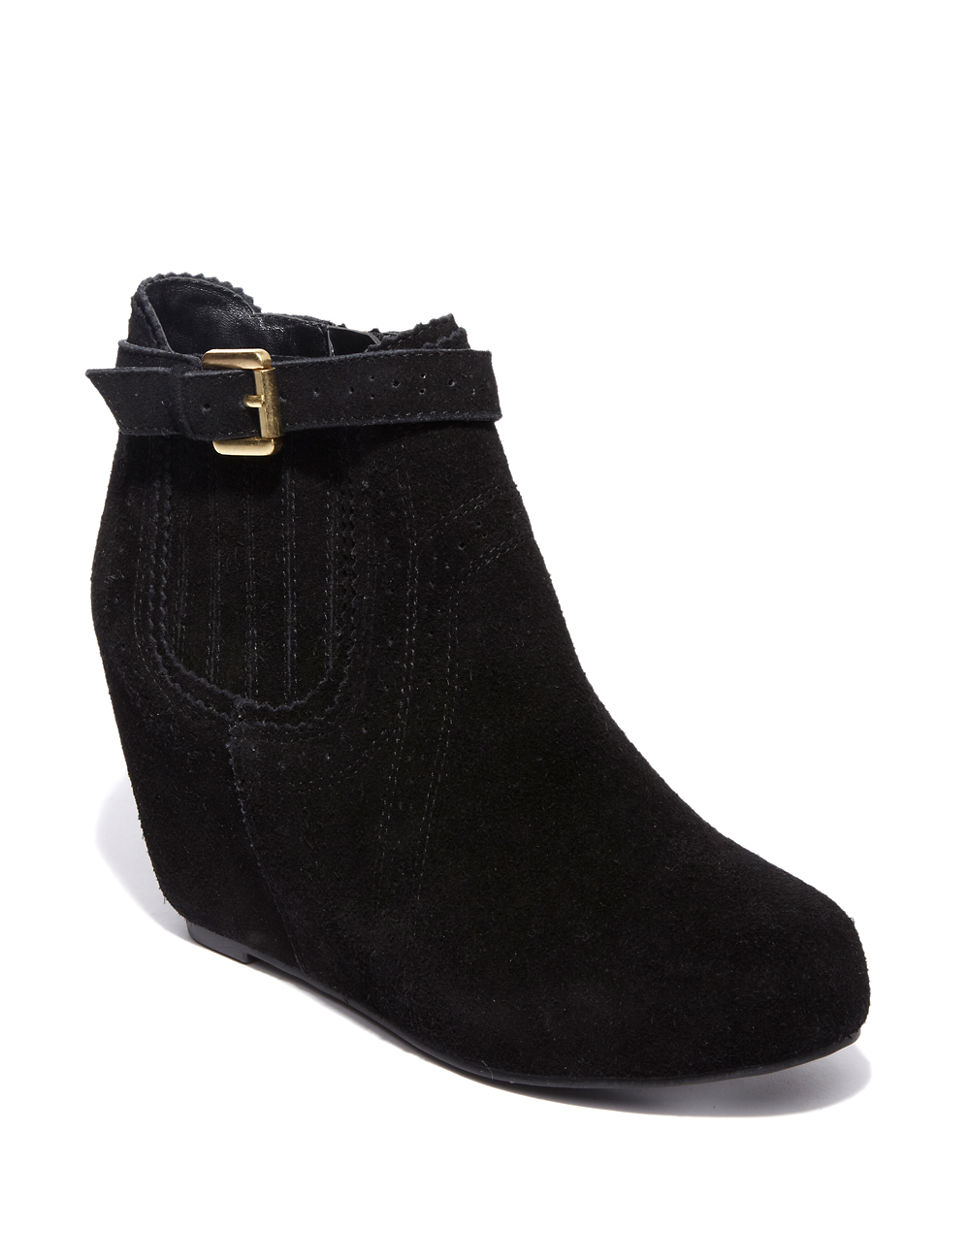 Booties for Women are a popular fashion trend, shop sexy booties for women cheap prices online at dolcehouse.ml and get free shipping. Buy peep toe wedge booties for Women cheap prices, find sexy peep toe wedge booties in timberland styles with colors like black, tan, brown, red pink and other colors bright colors.